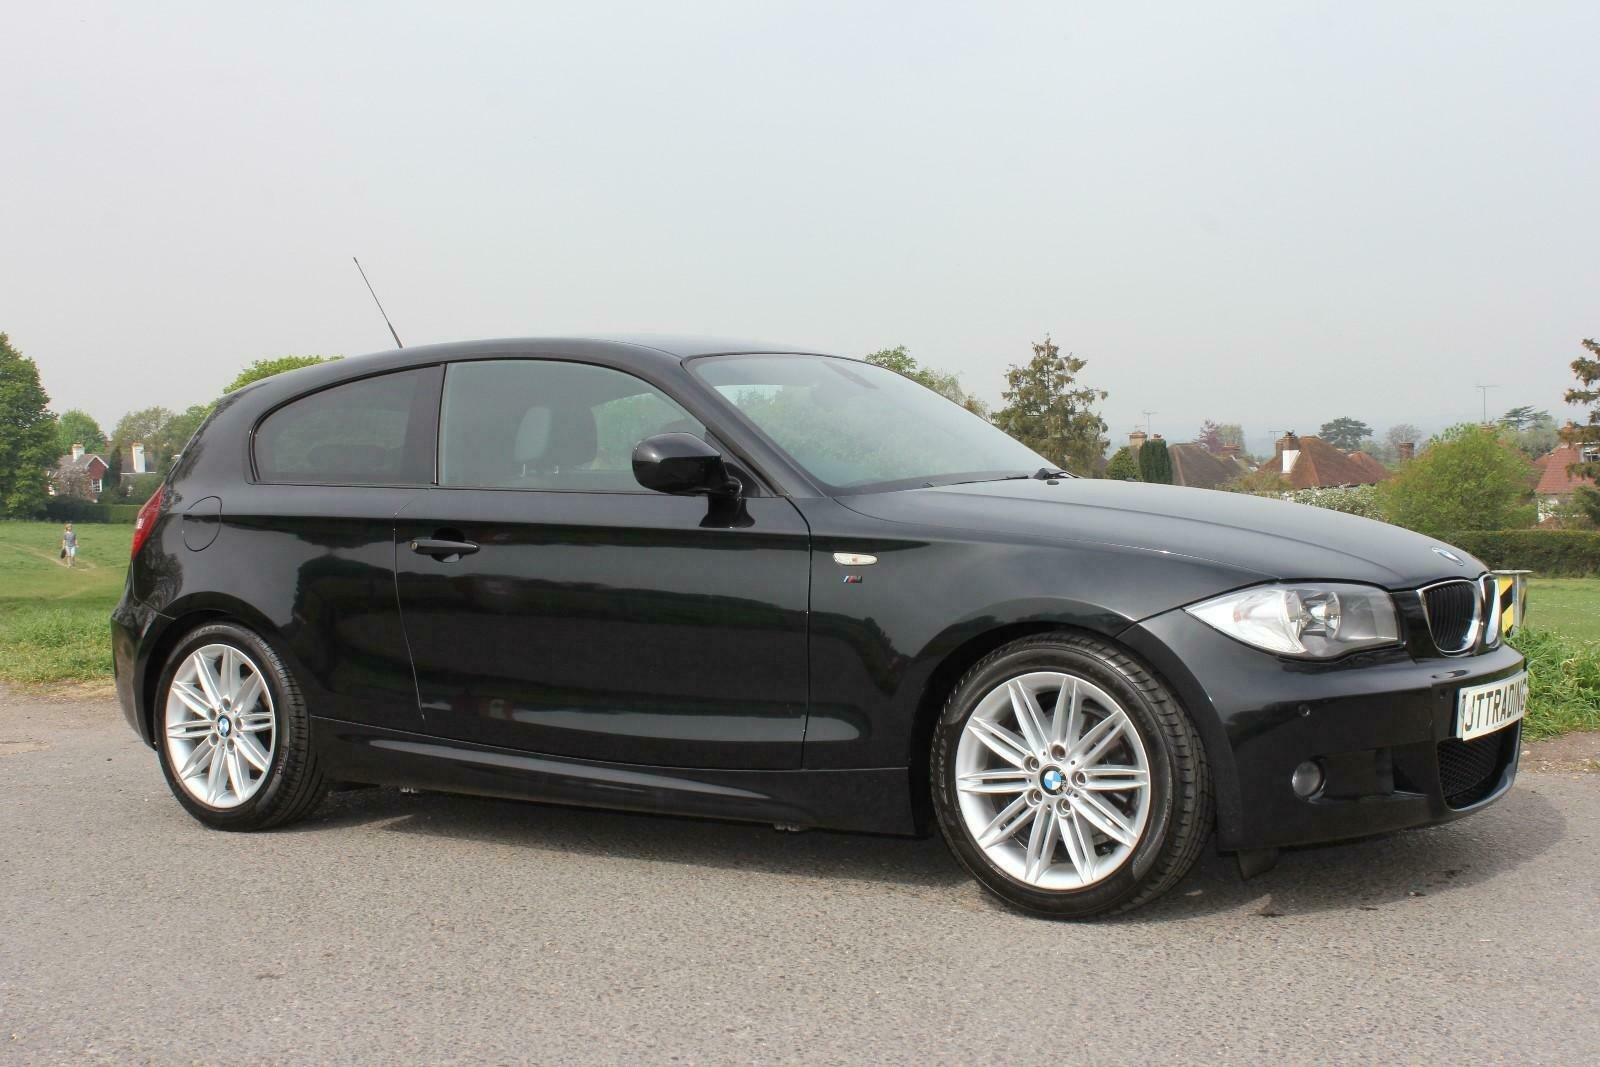 2010 BMW 1 Series 2.0 116i M Sport Hatchback 3 door Coupe  For Sale (picture 1 of 6)